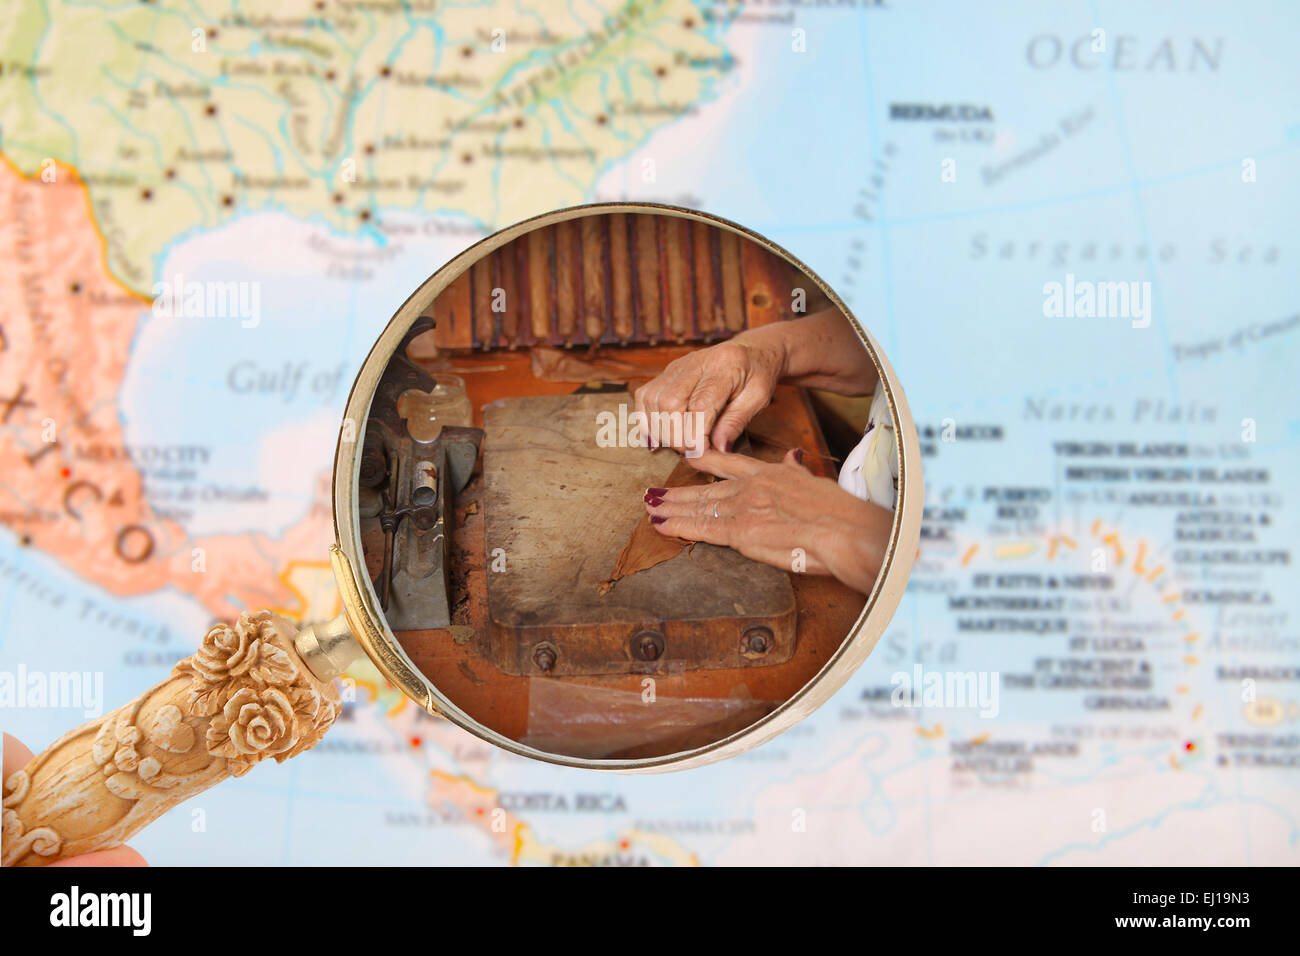 Looking in on a woman making cigars in Cuba with a map of the Caribbean - Stock Image